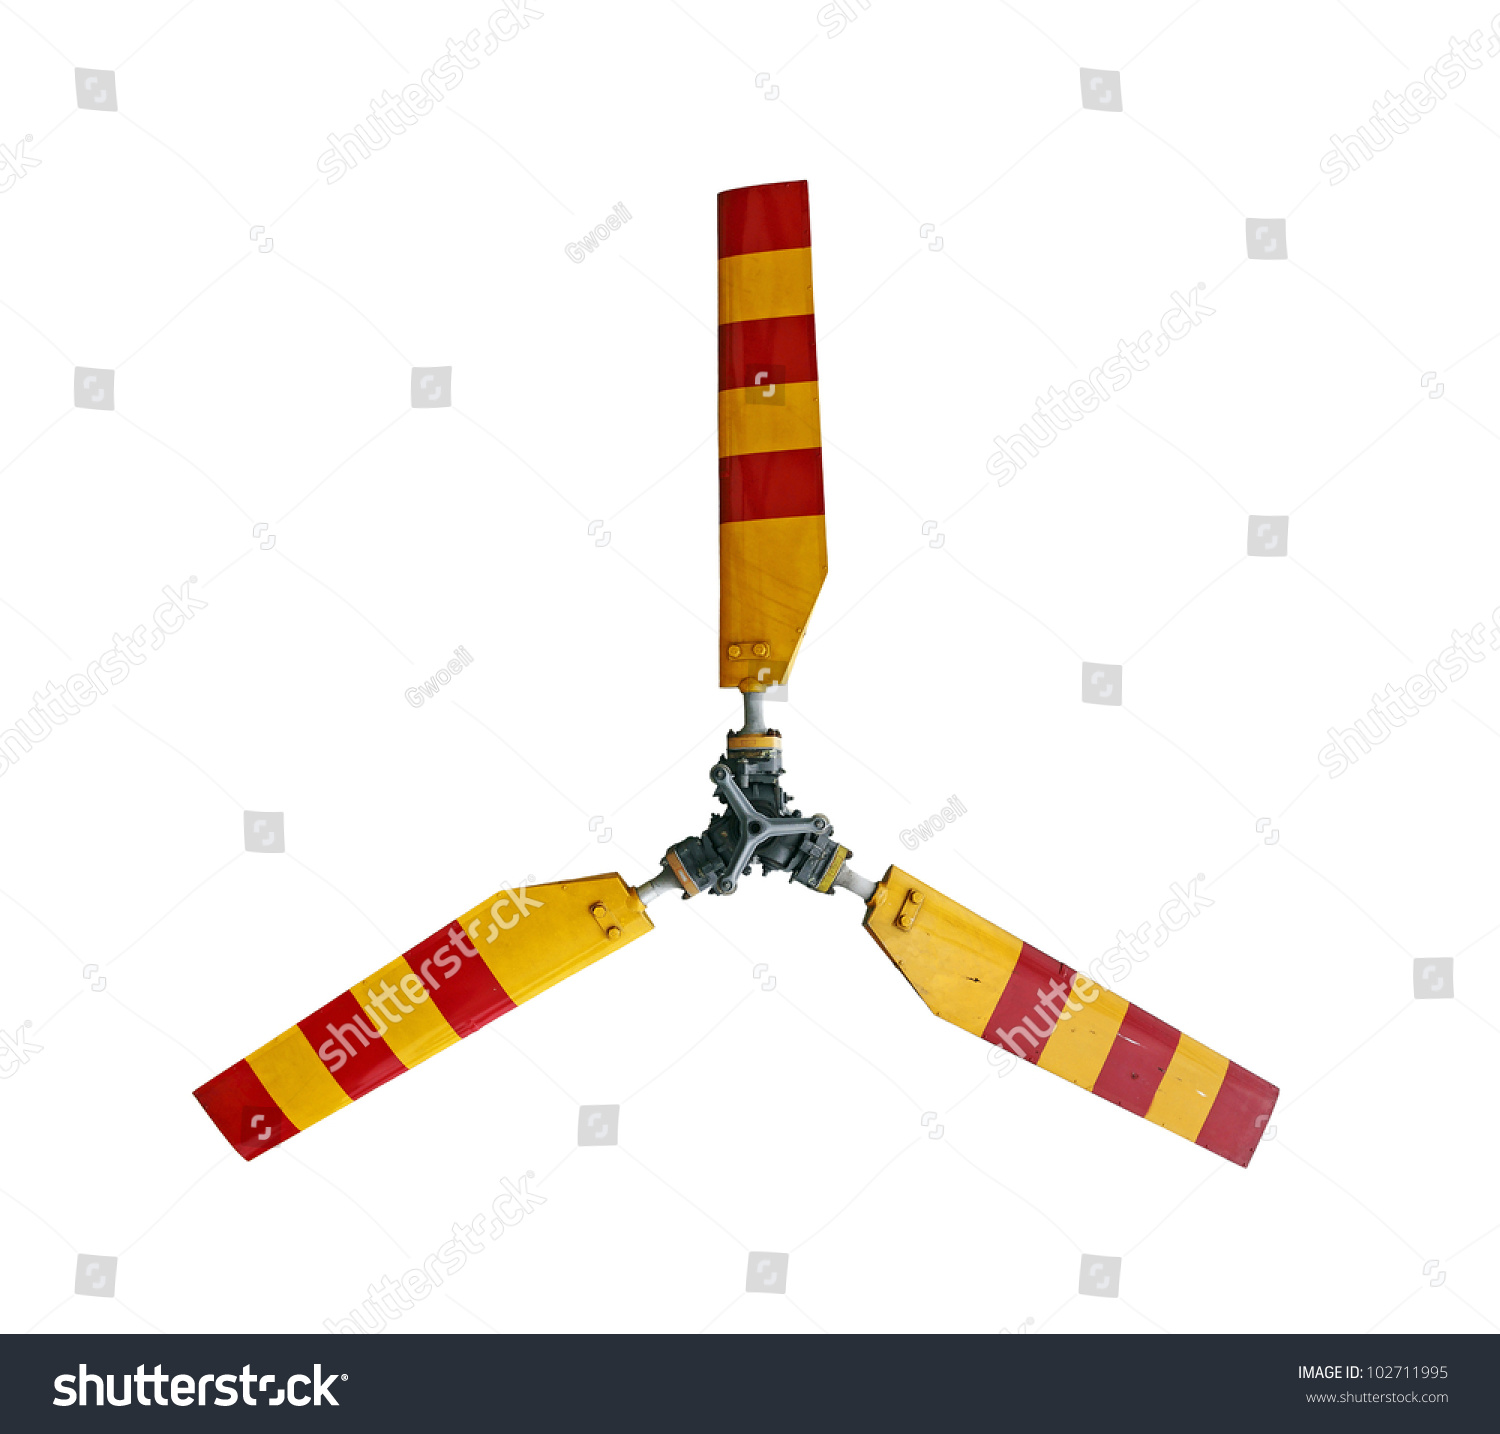 Five Blade Propeller Clip Art : A yellow and red striped propeller rotor blade of